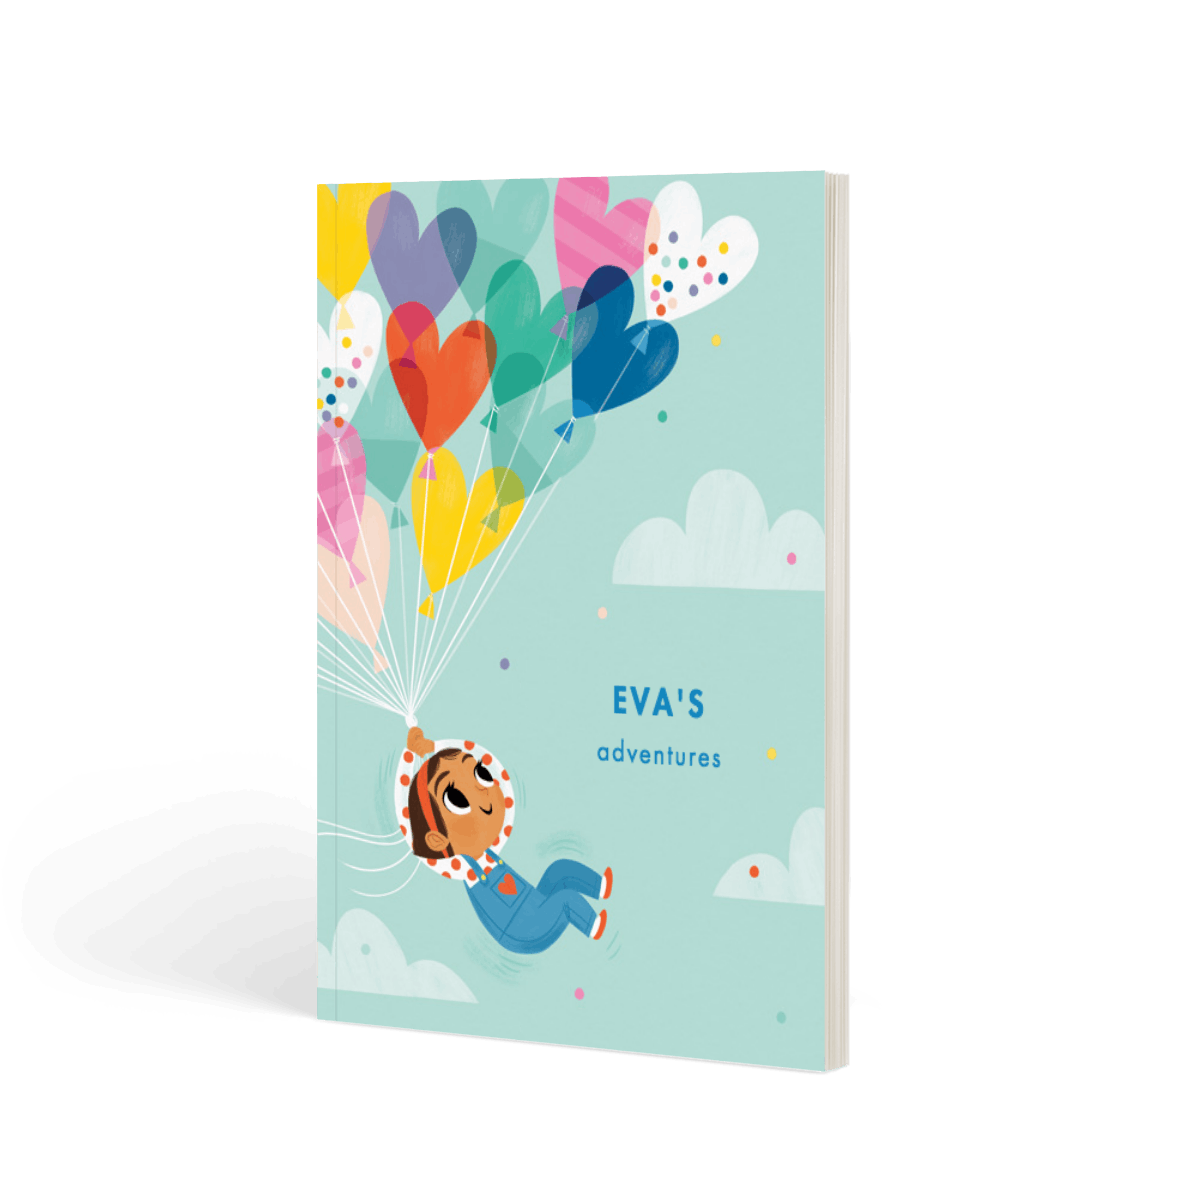 Https%3a%2f%2fwww.papier.com%2fproduct image%2f31604%2f6%2fballoon girl ii 7937 front 1511371517.png?ixlib=rb 1.1